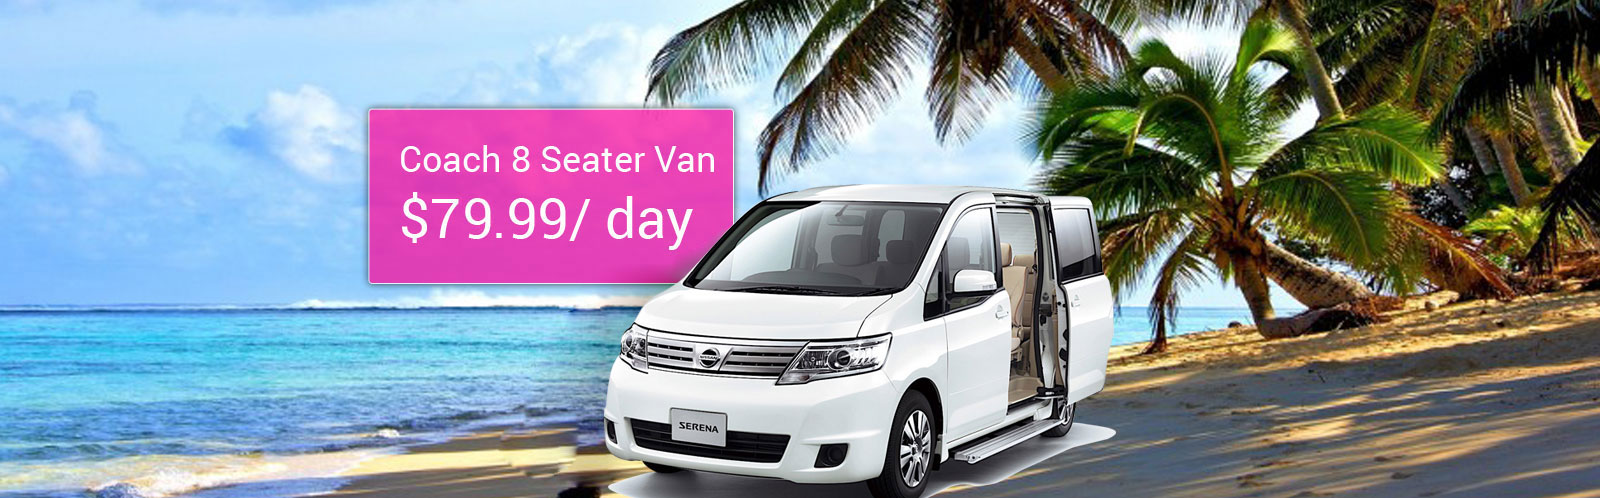 Budget Car And Van Rental Cook Islands